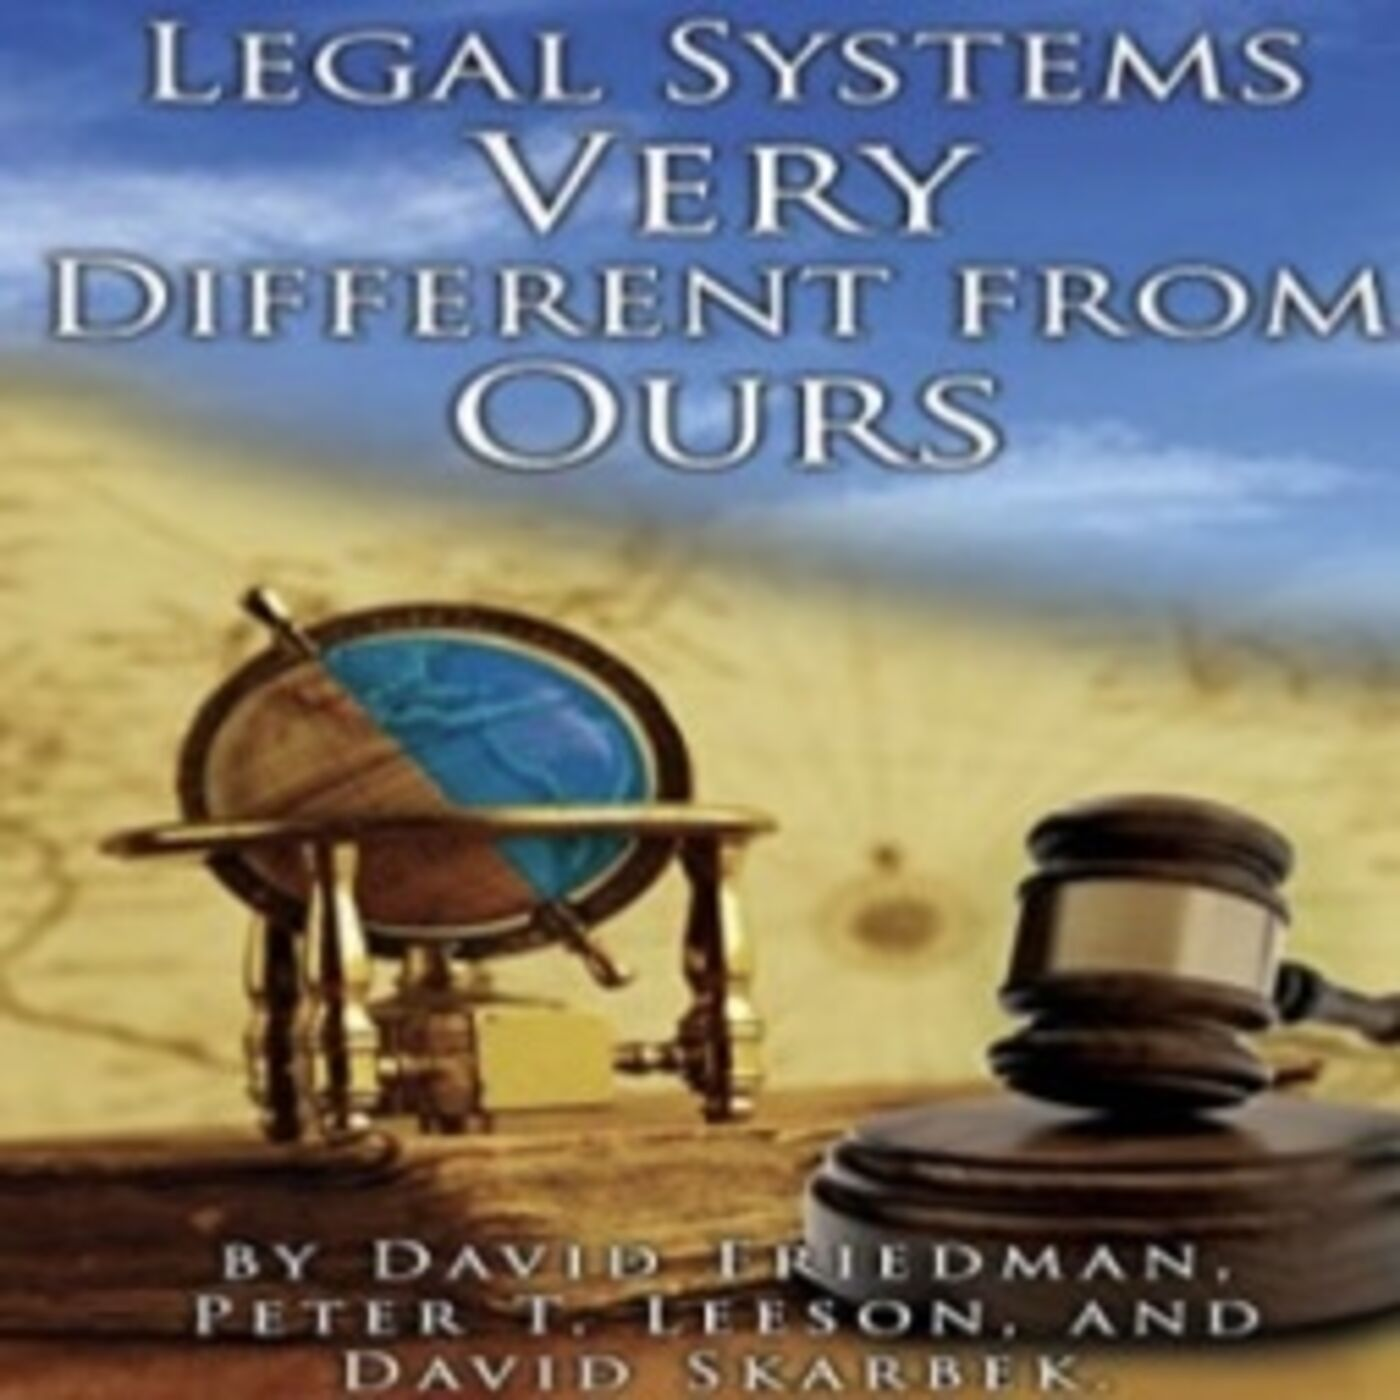 David Friedman - Legal Systems Very Different From Ours